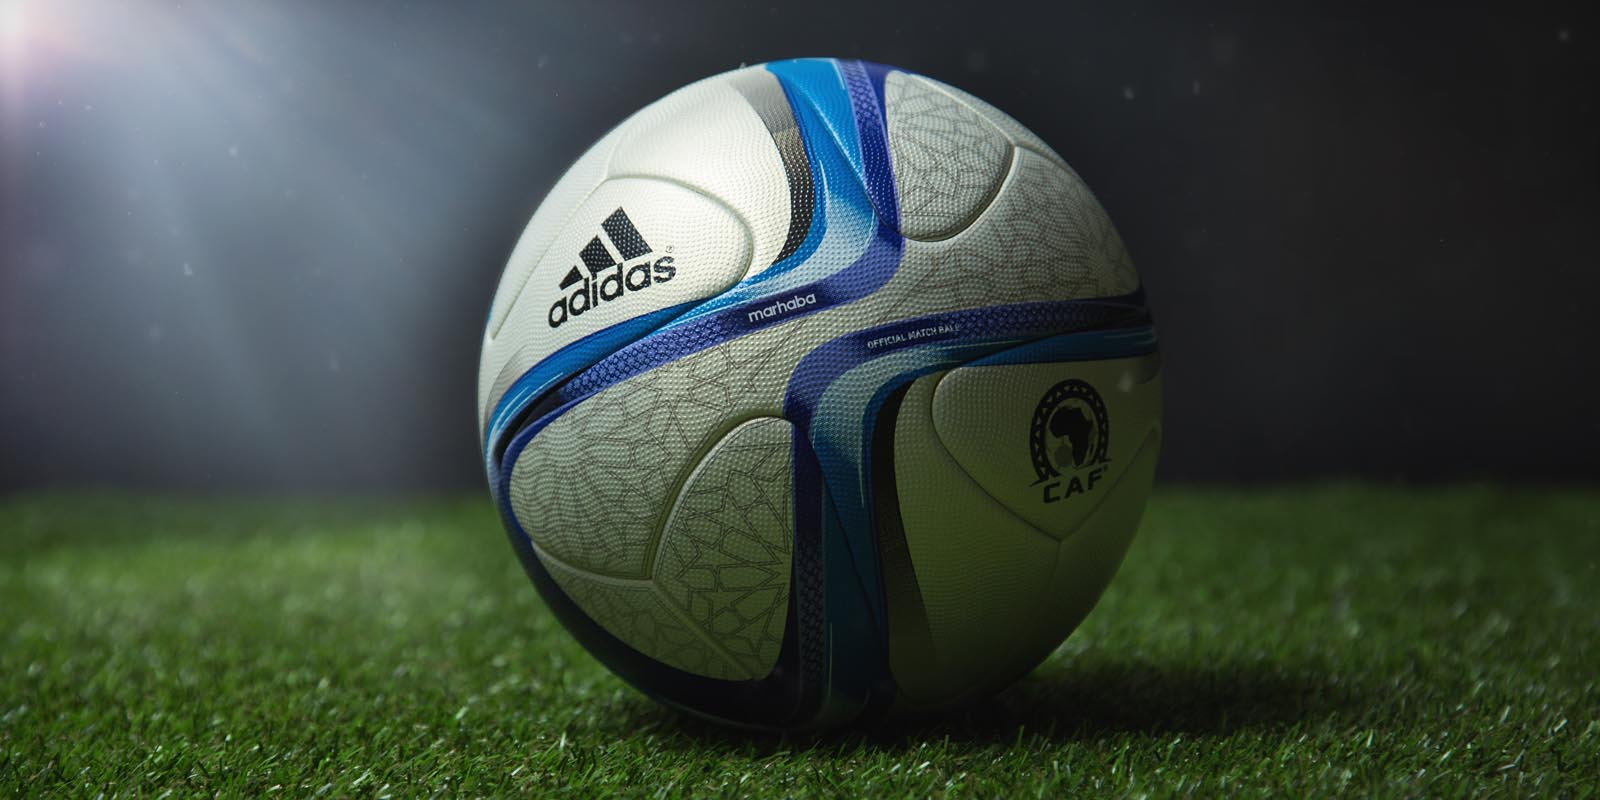 243f7f0f7b0 Based on the visual design of the new Adidas Conext 15 Ball, the 2015 Africa  Cup of Nations Official Match Ball features a beige main color with an ...